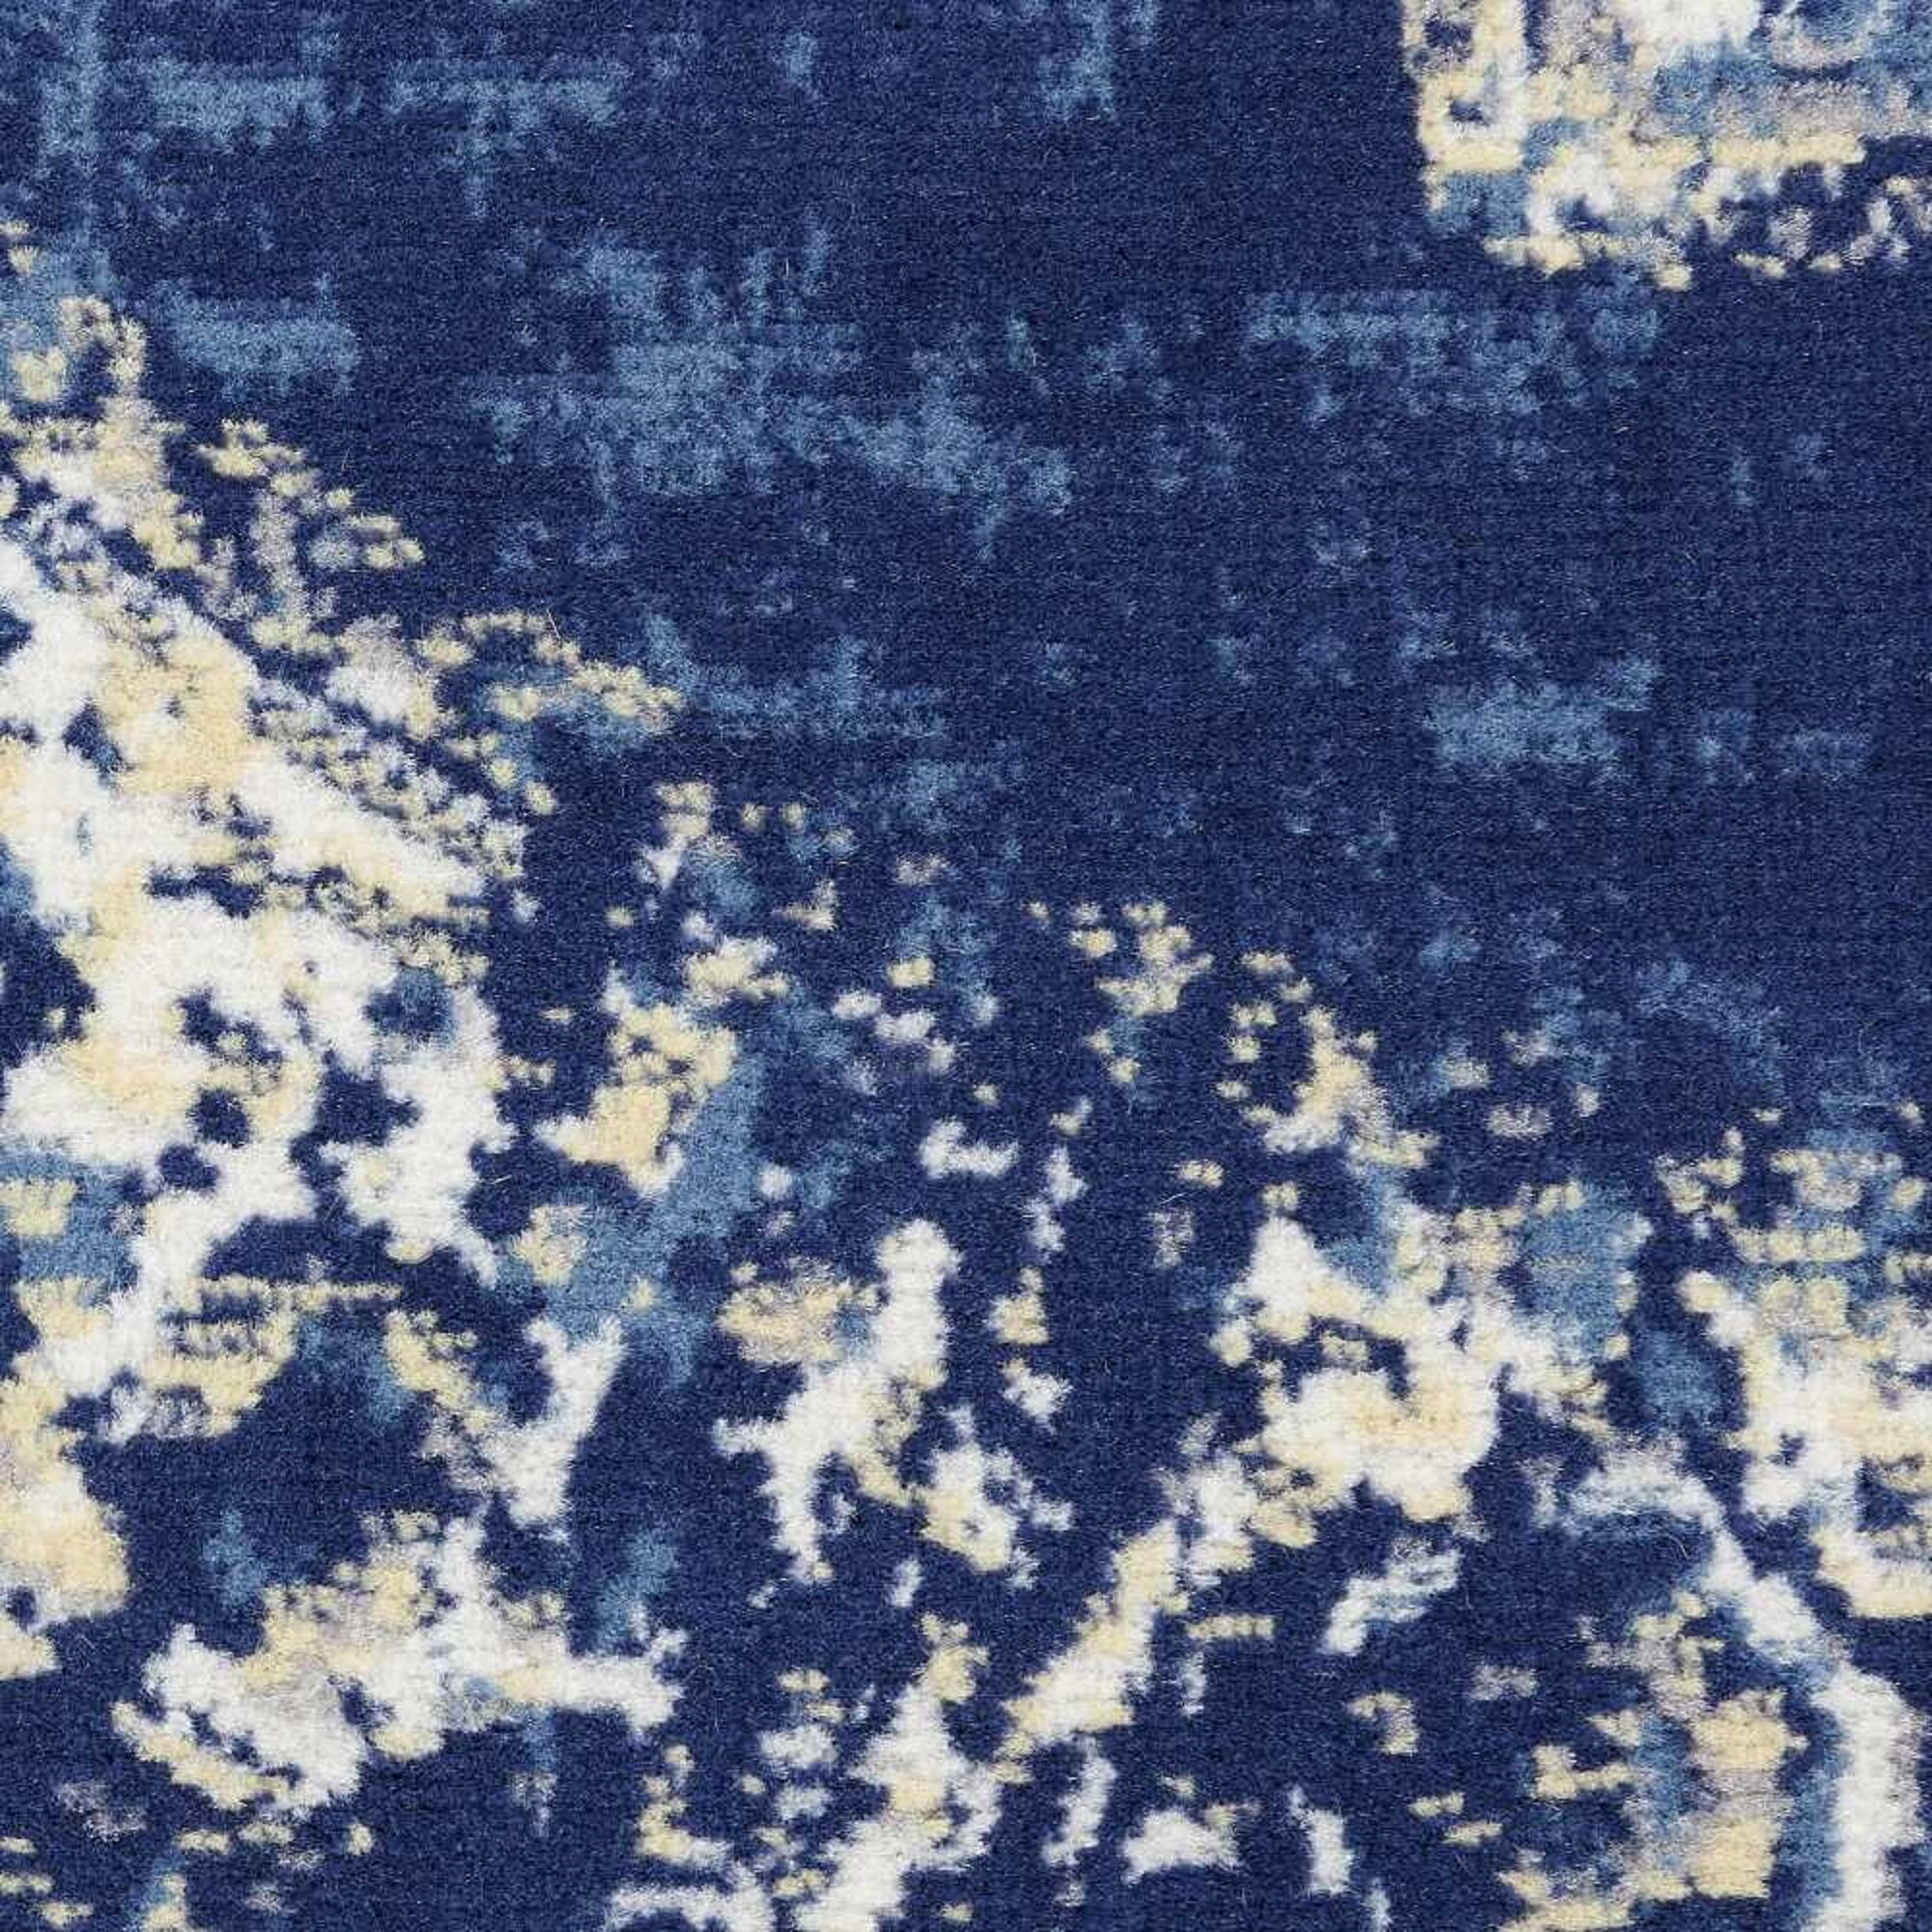 Susan Persian Inspired White Blue Area